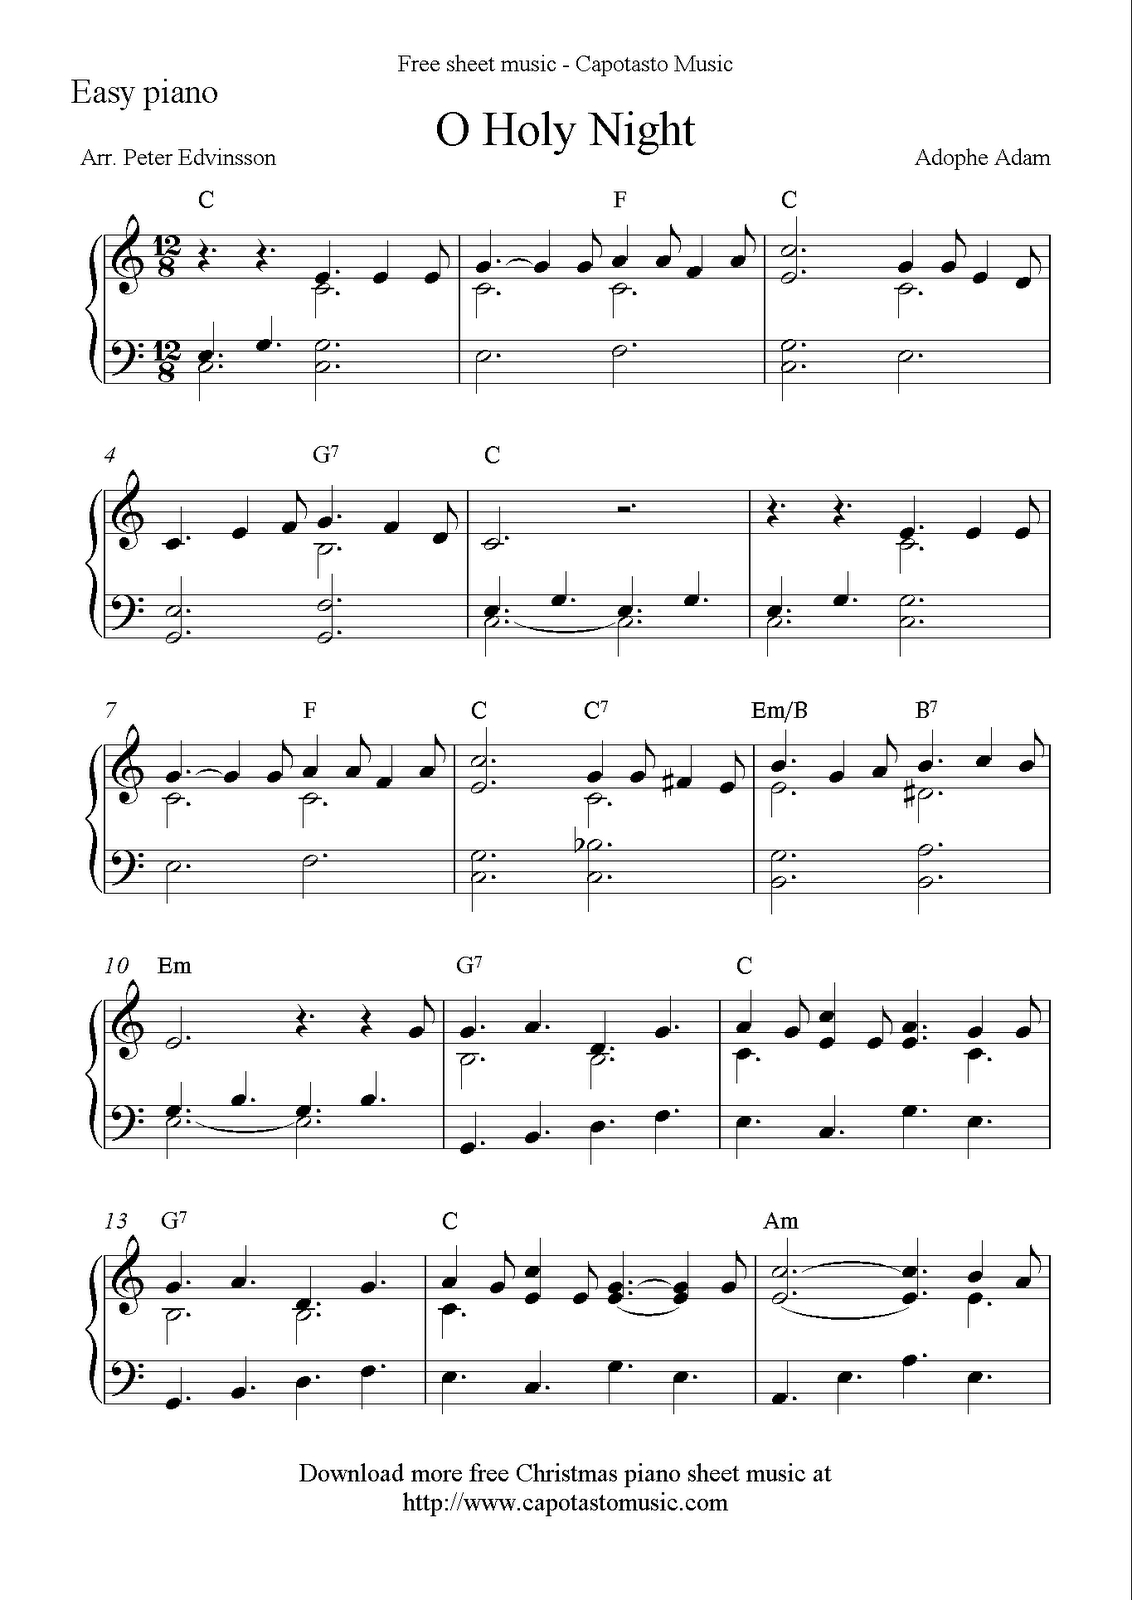 Free Sheet Music Scores: Free Easy Christmas Piano Sheet Music, O - Free Christmas Sheet Music For Keyboard Printable